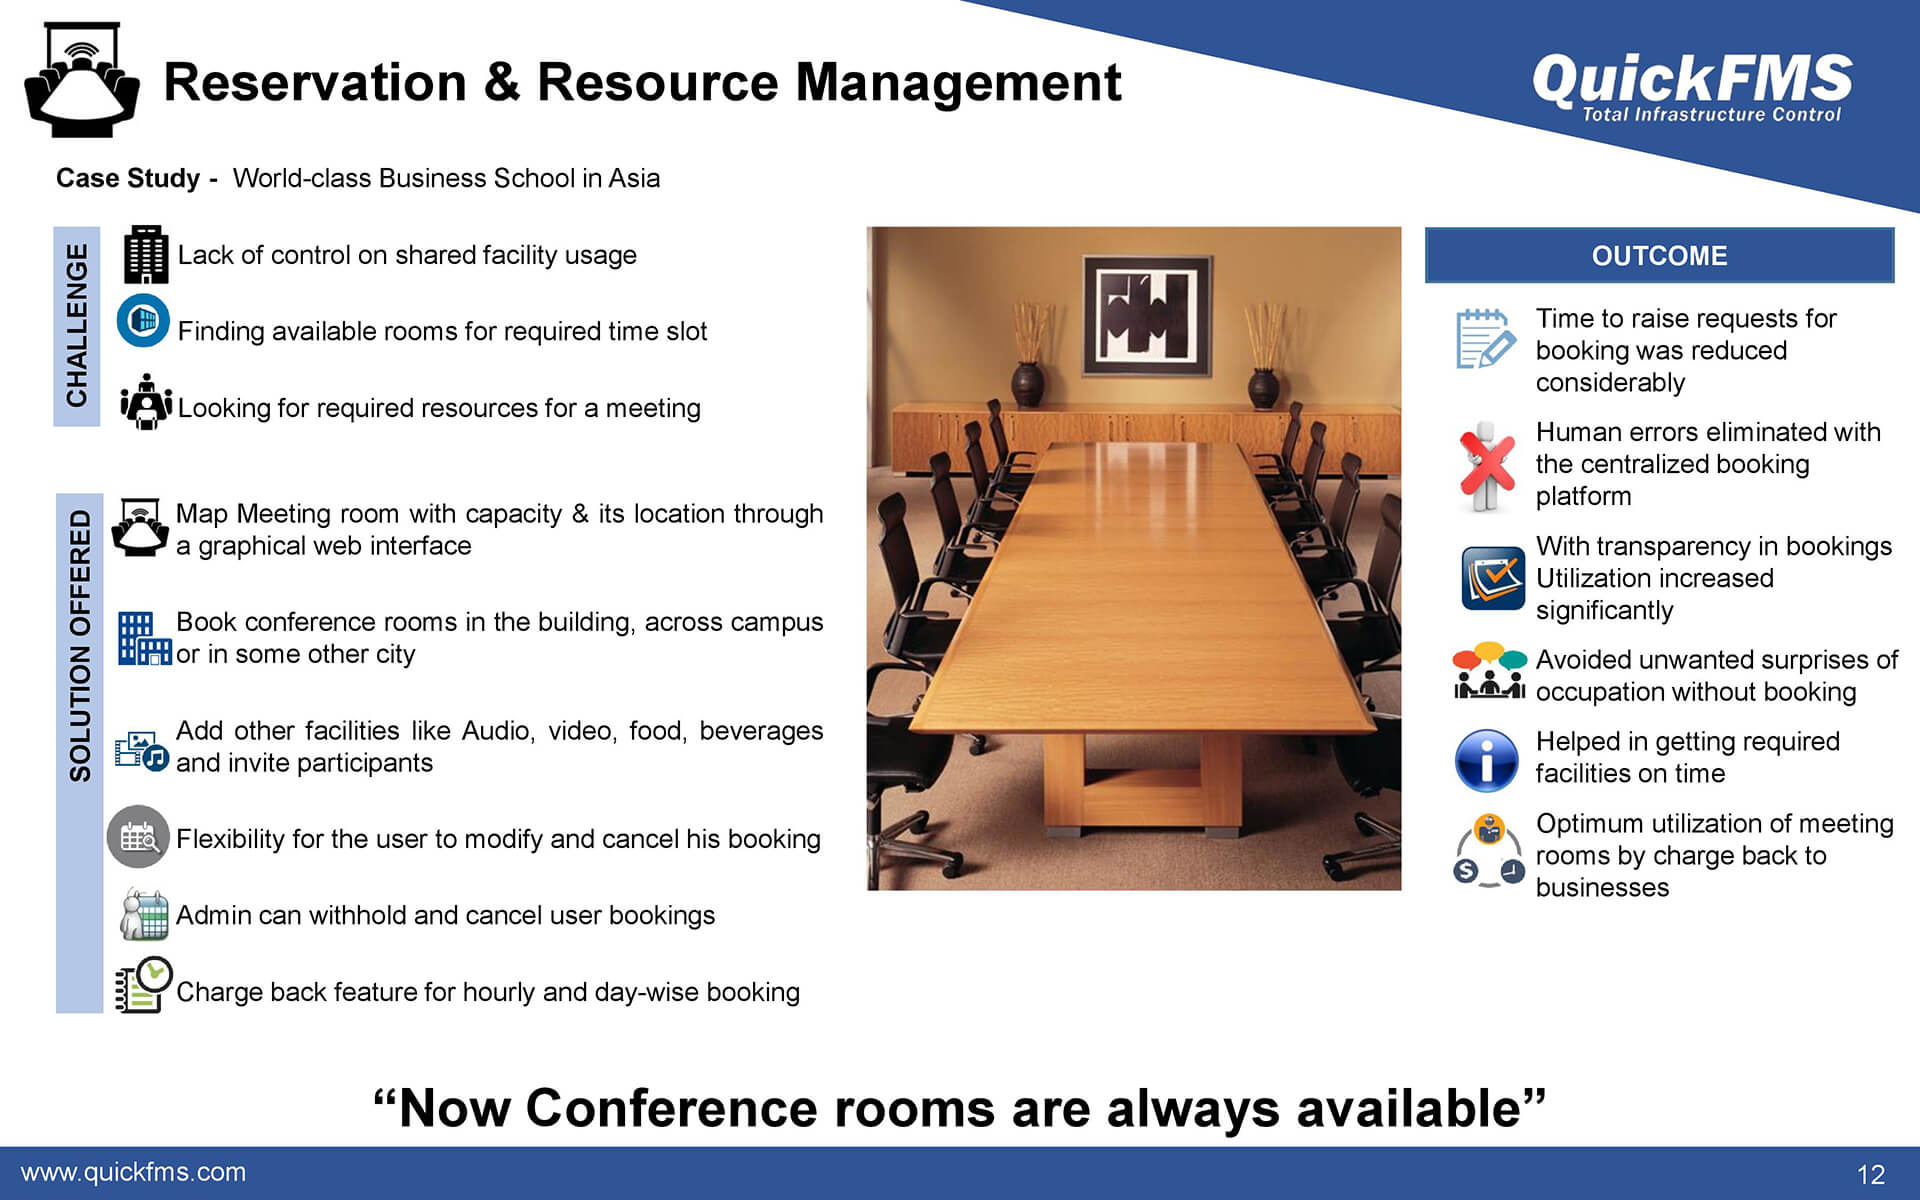 Overview presentation on reservation and resource management - QuickFMS